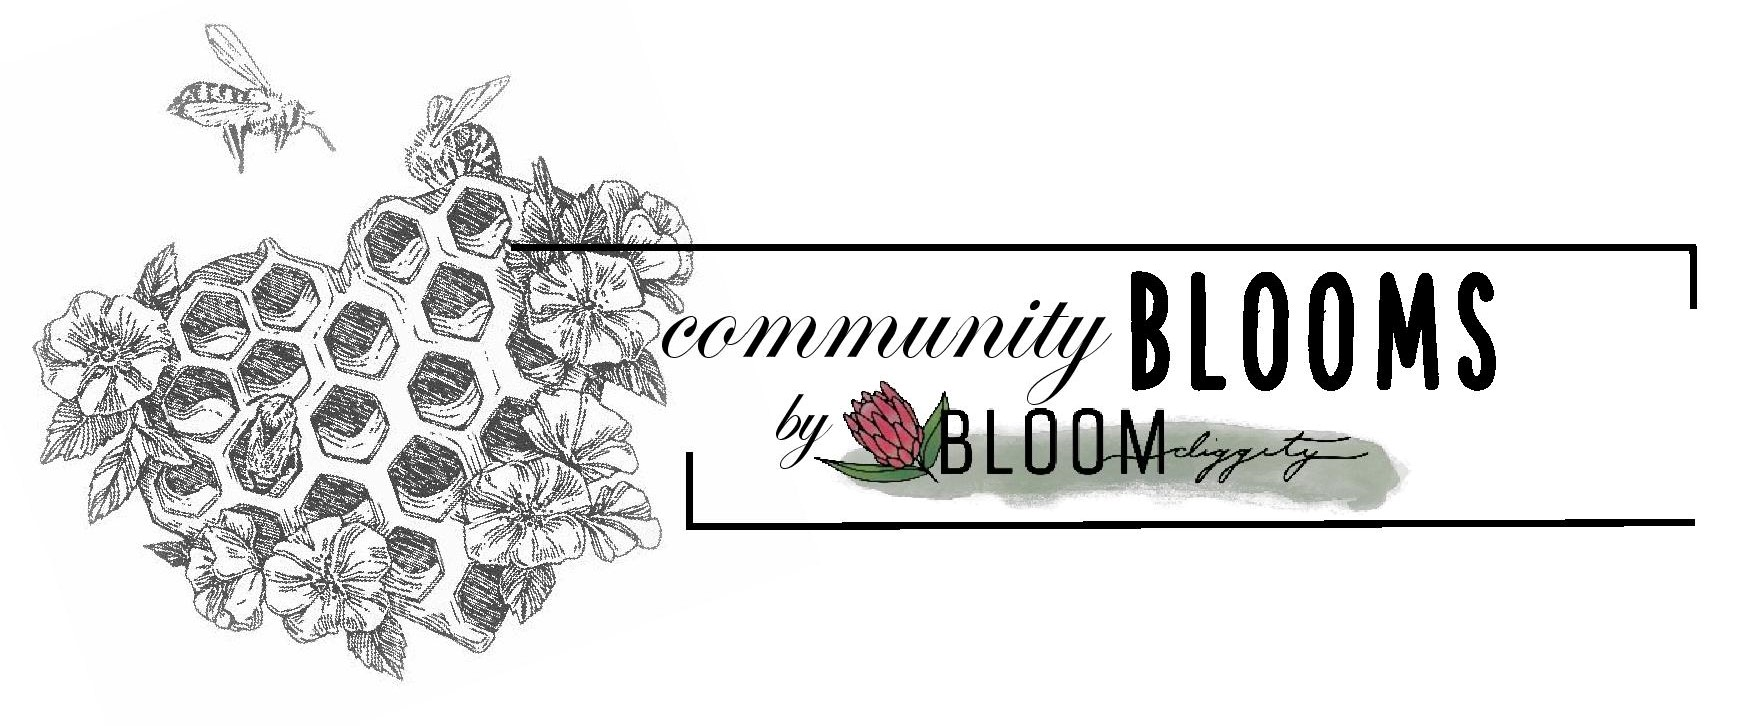 communityblooms